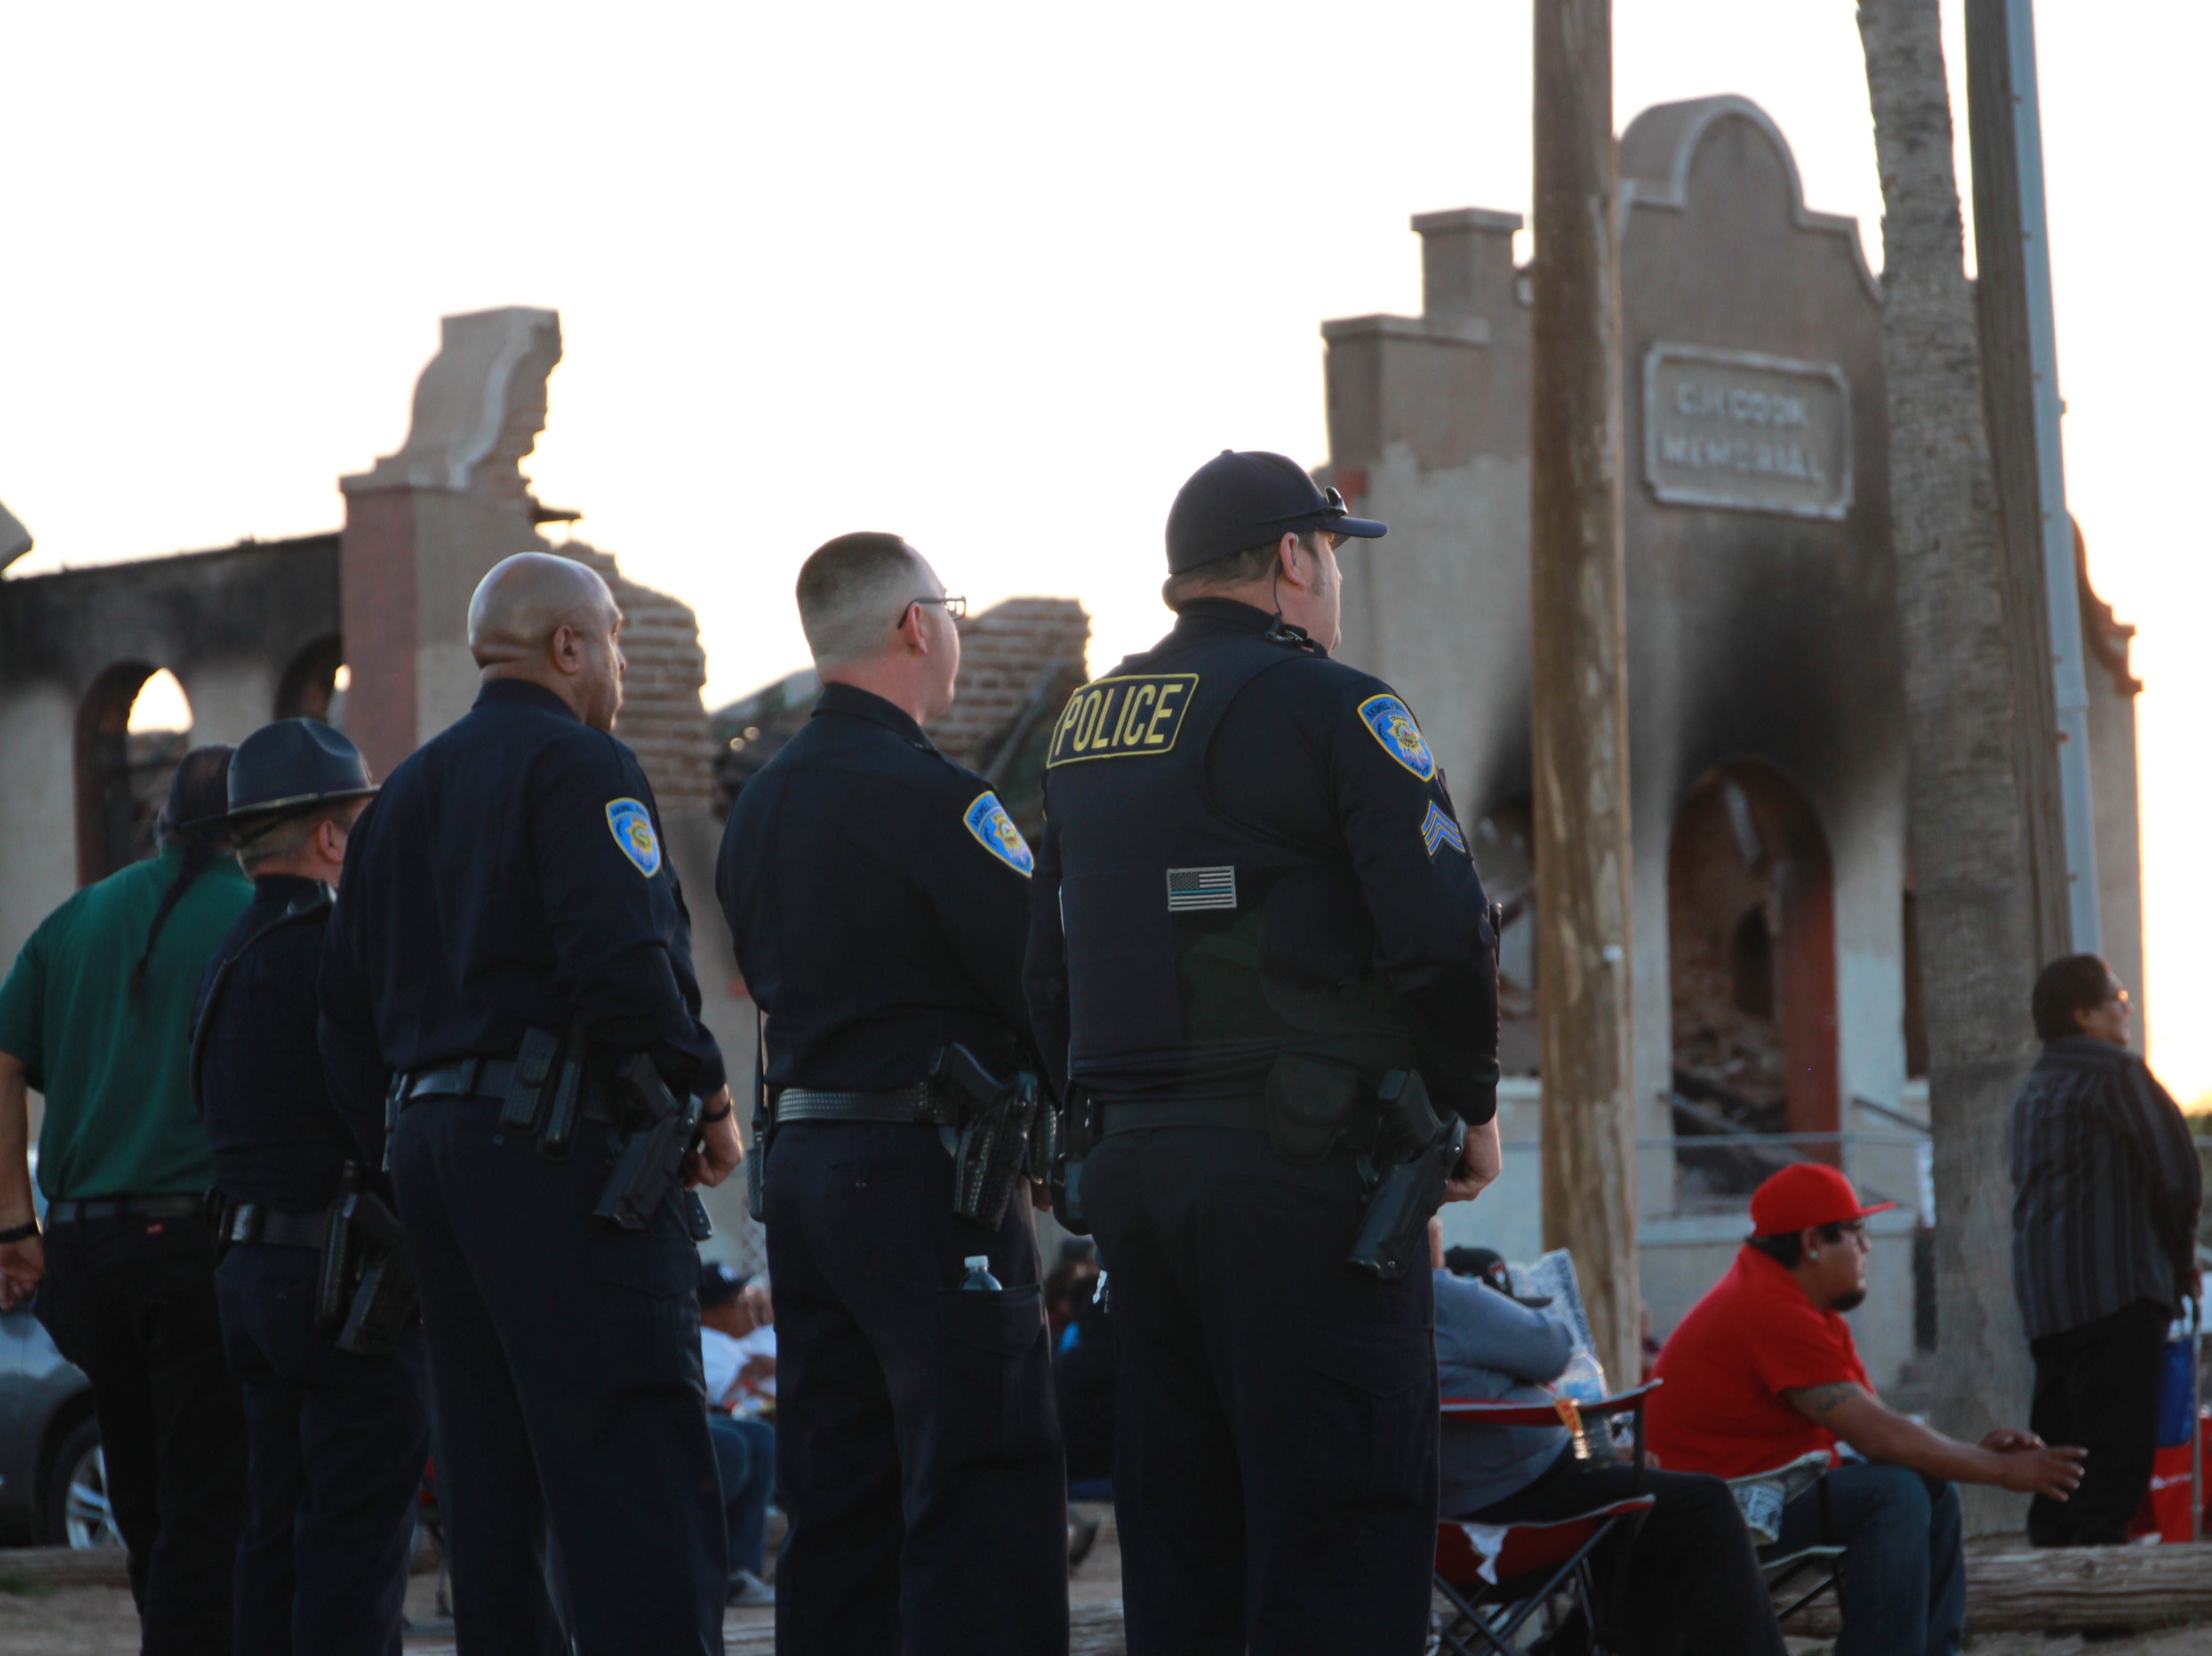 Policemen from the Gila River Police Department attended the prayer vigil.